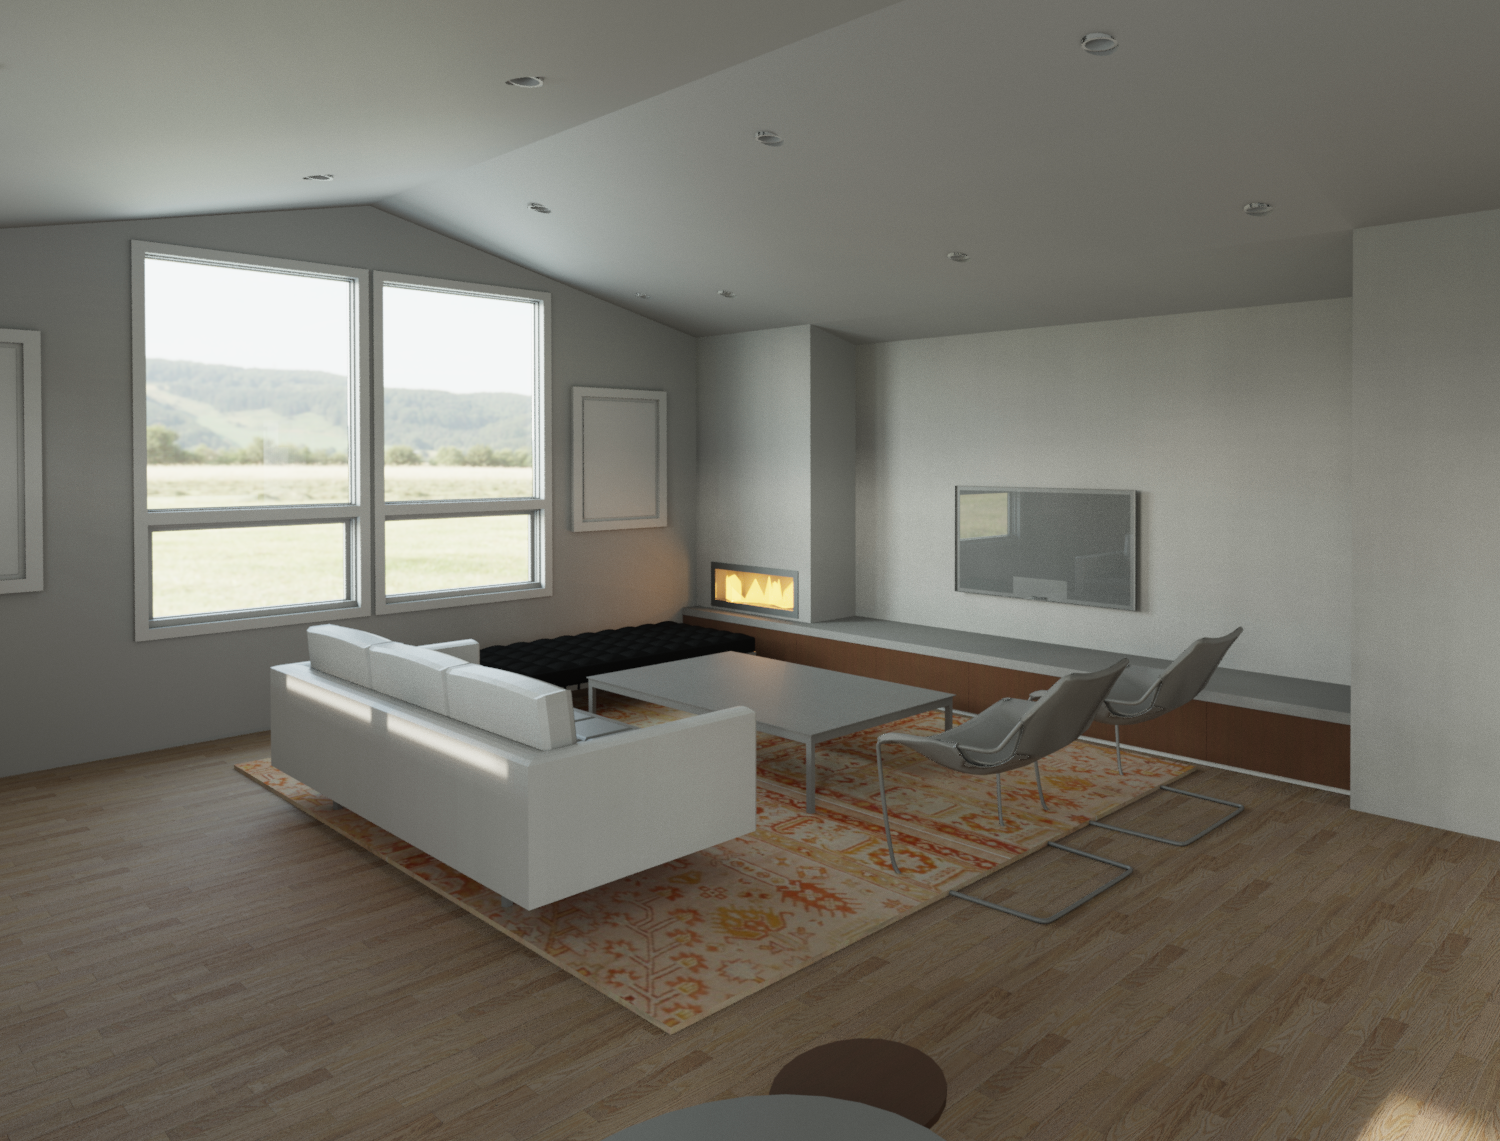 Haag-Docter-Model.rvt_2016-Jan-27_03-37-24PM-000_3D_View_-_Living-Fireplace.png